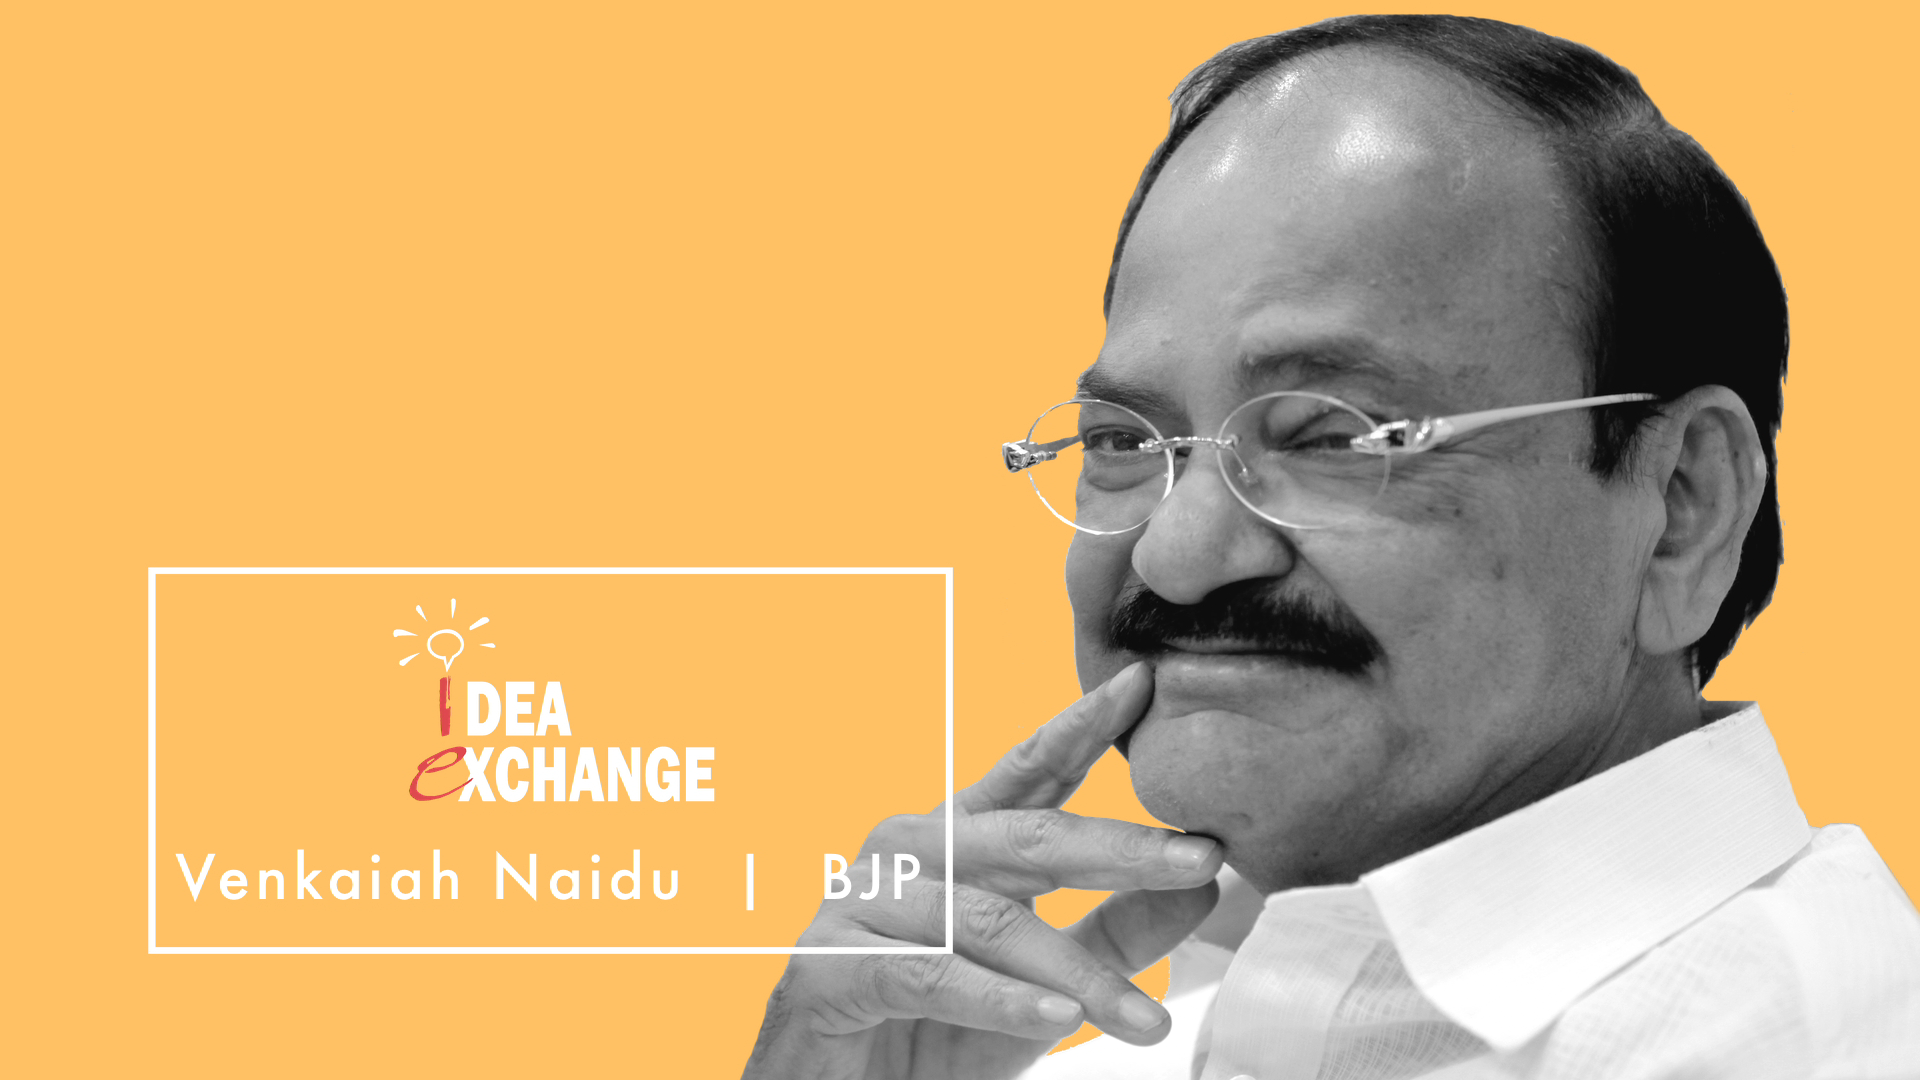 Idea Exchange : Don't want to compare the personalities of Modi and Advani: Venkaiah Naidu